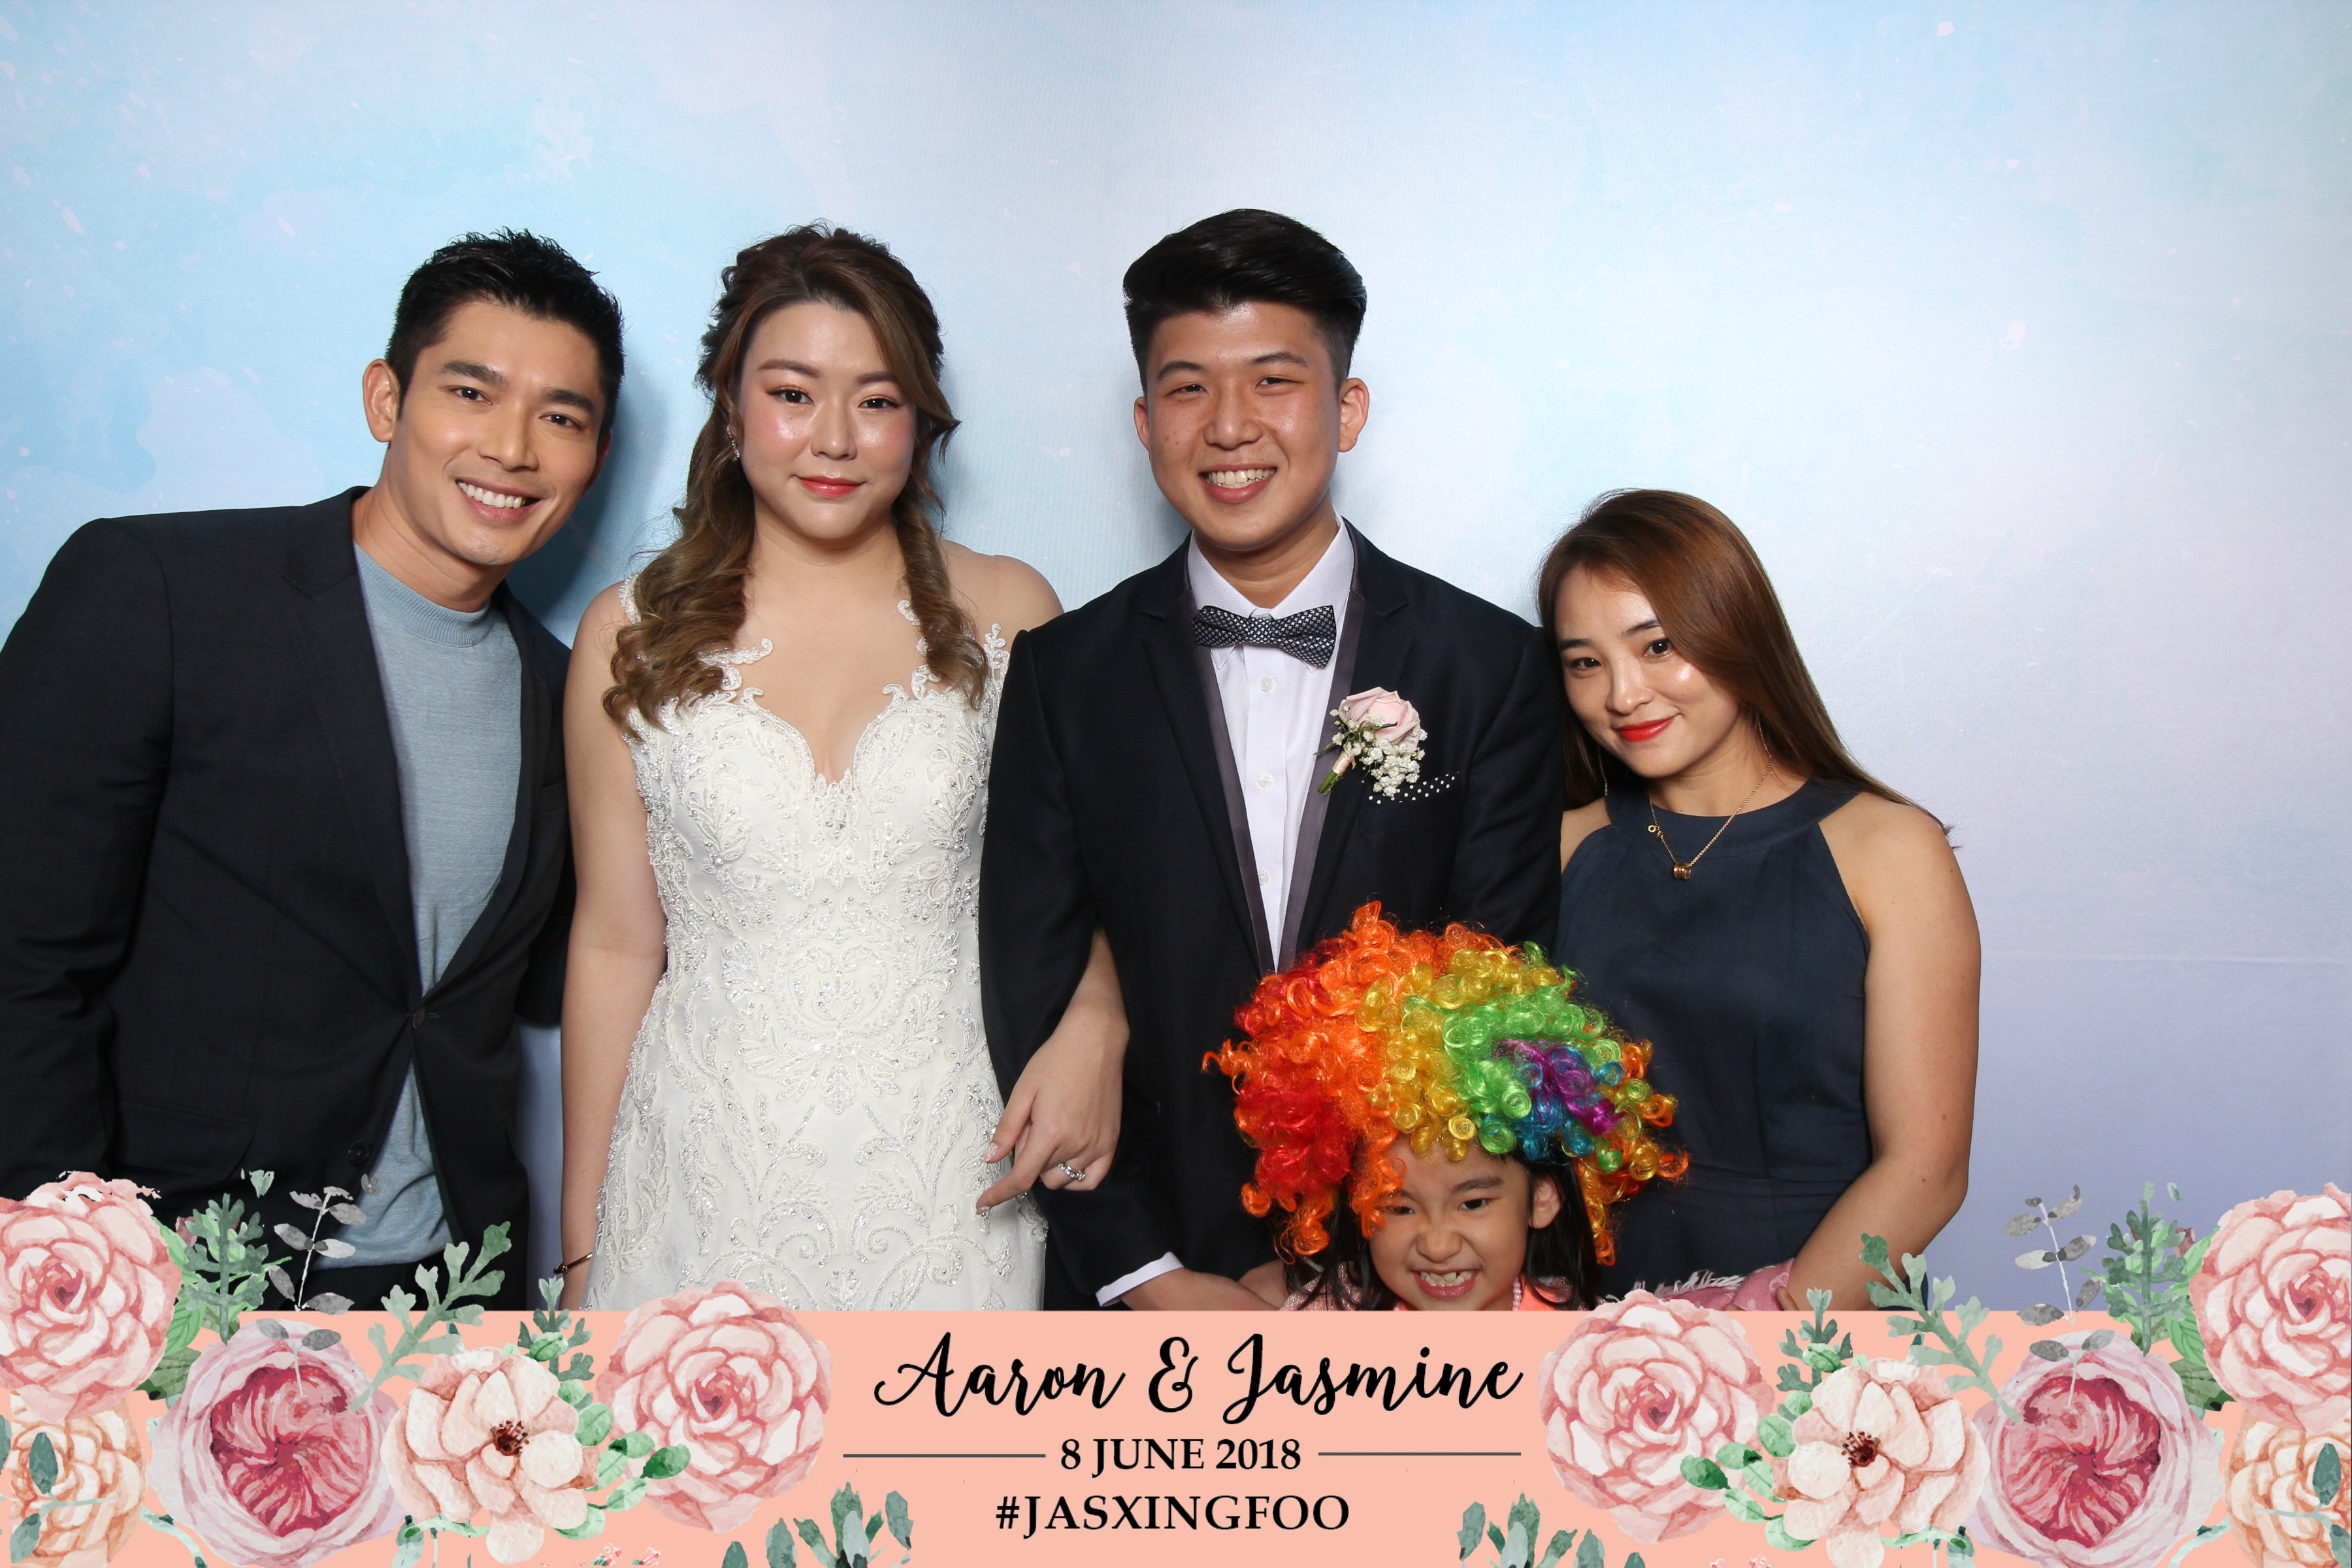 Photobooth 0806-22